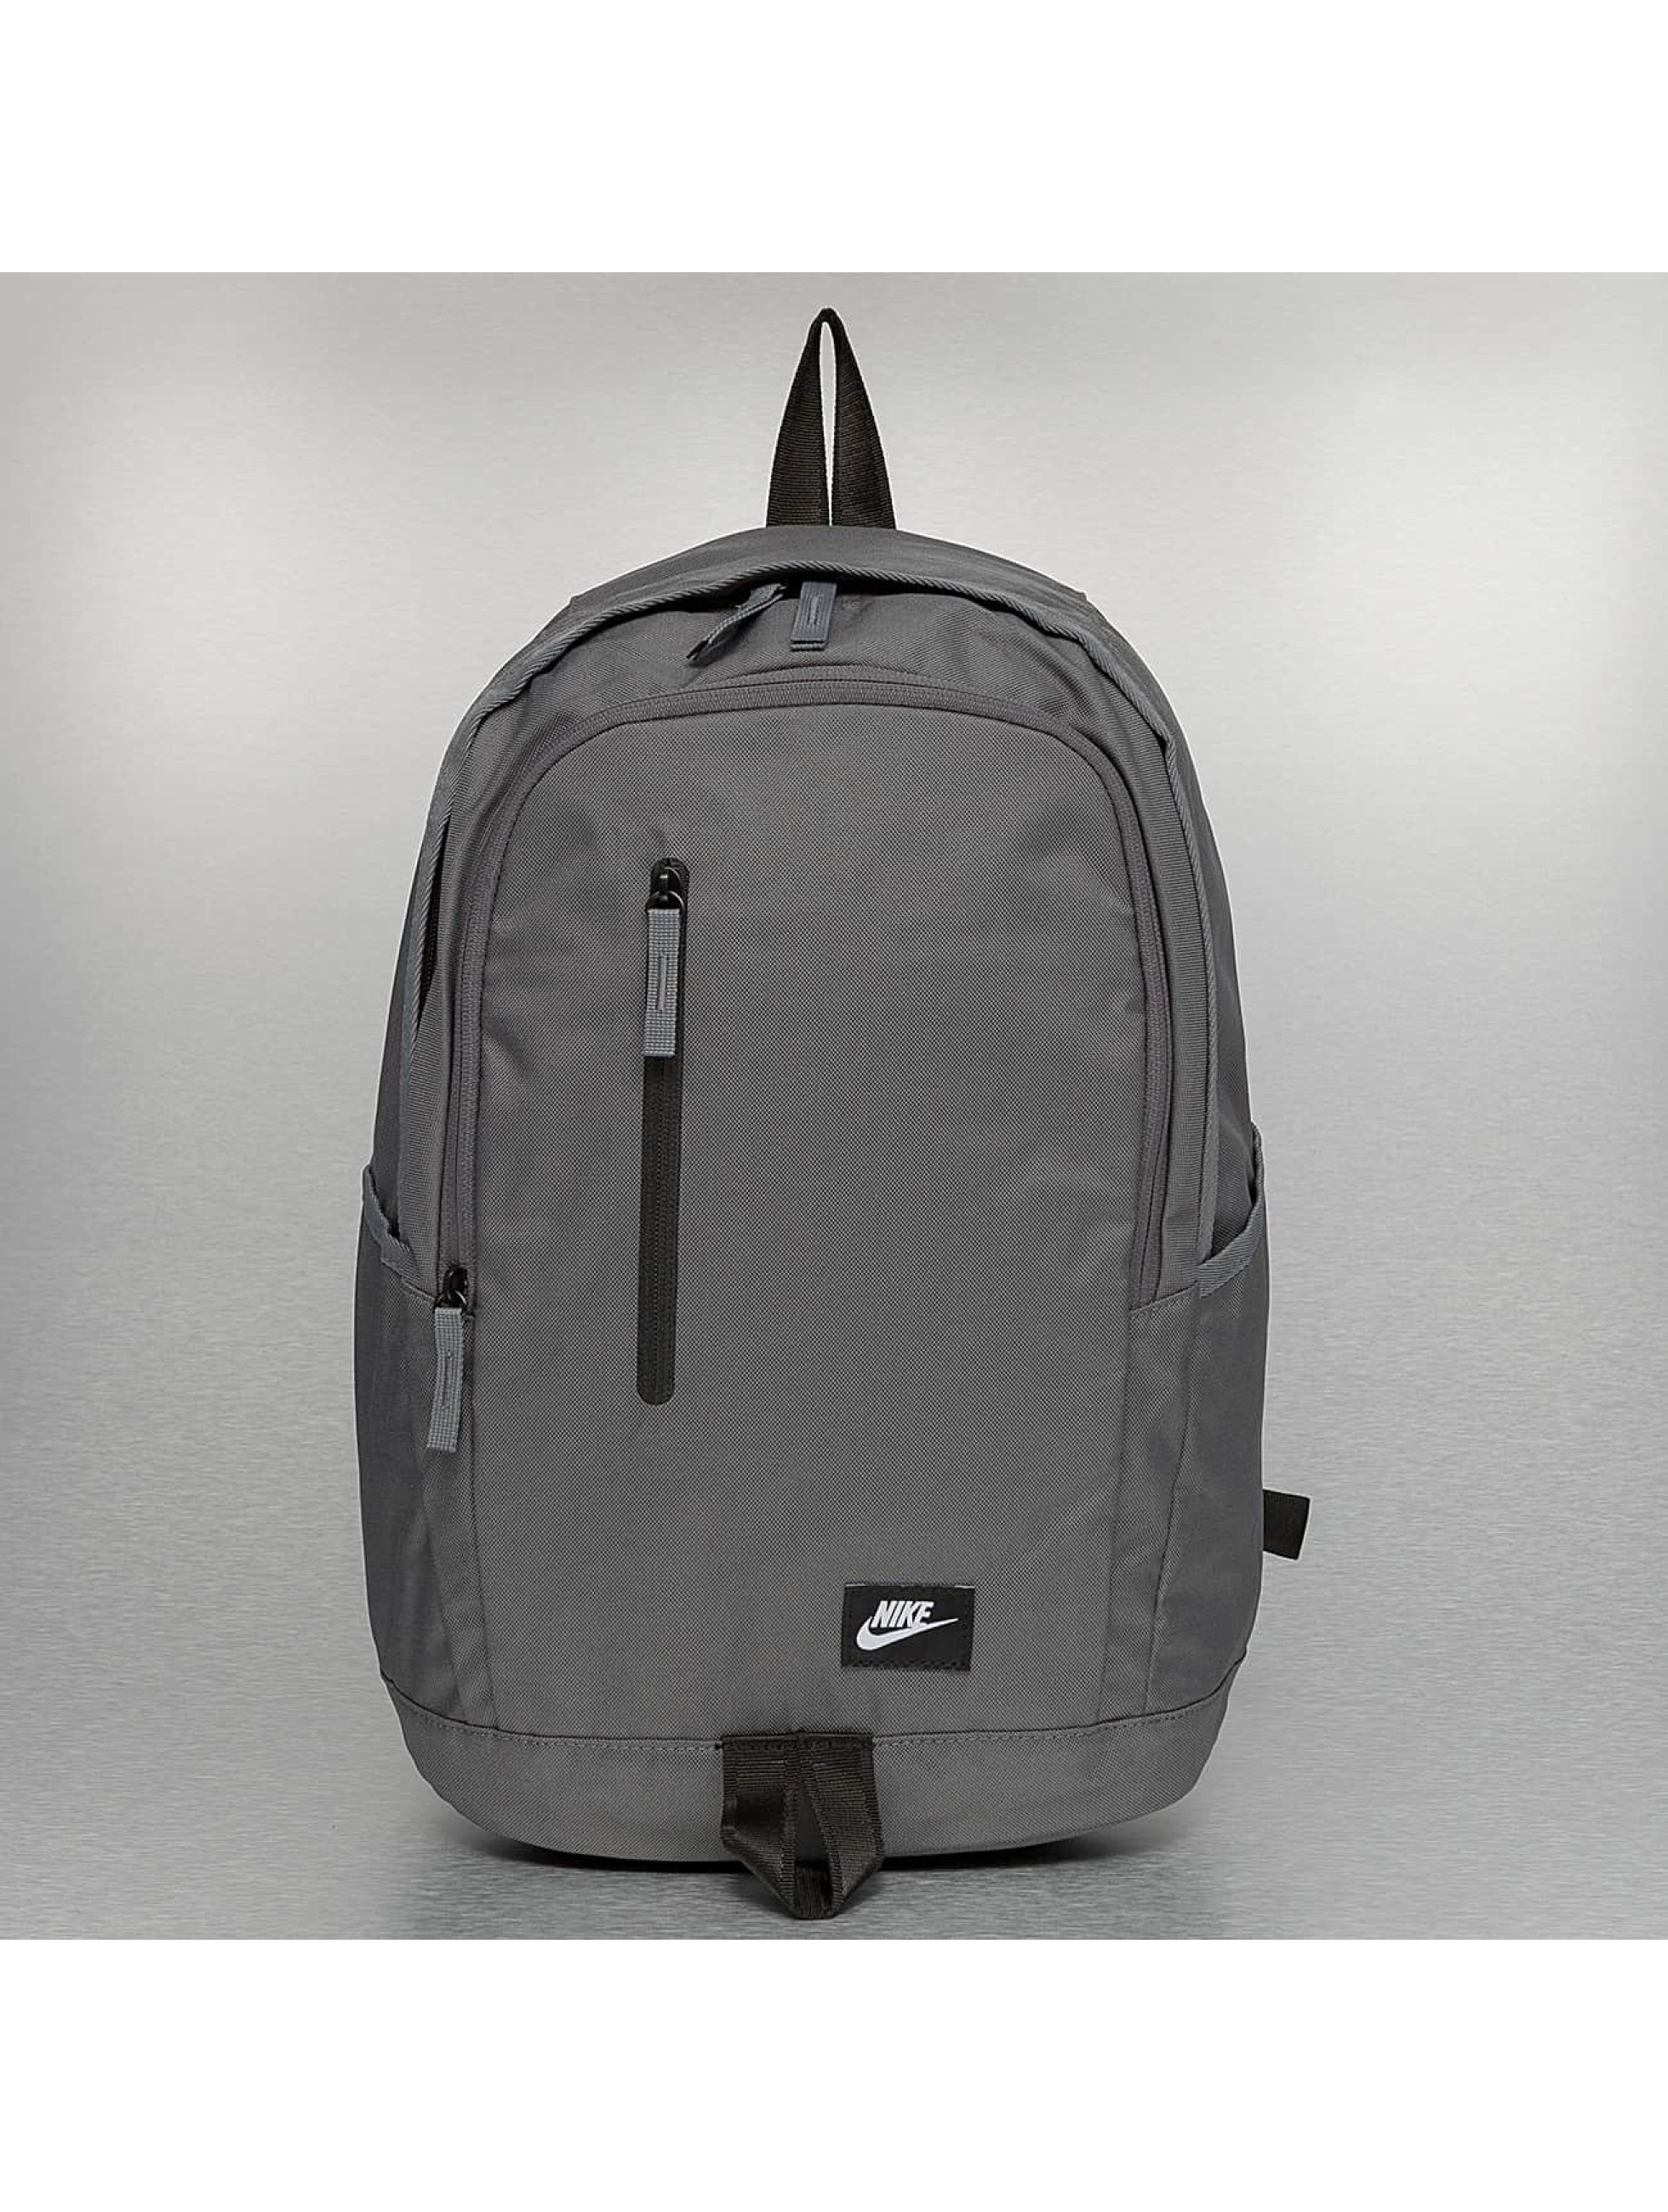 Nike Backpack All Access Soleday grey